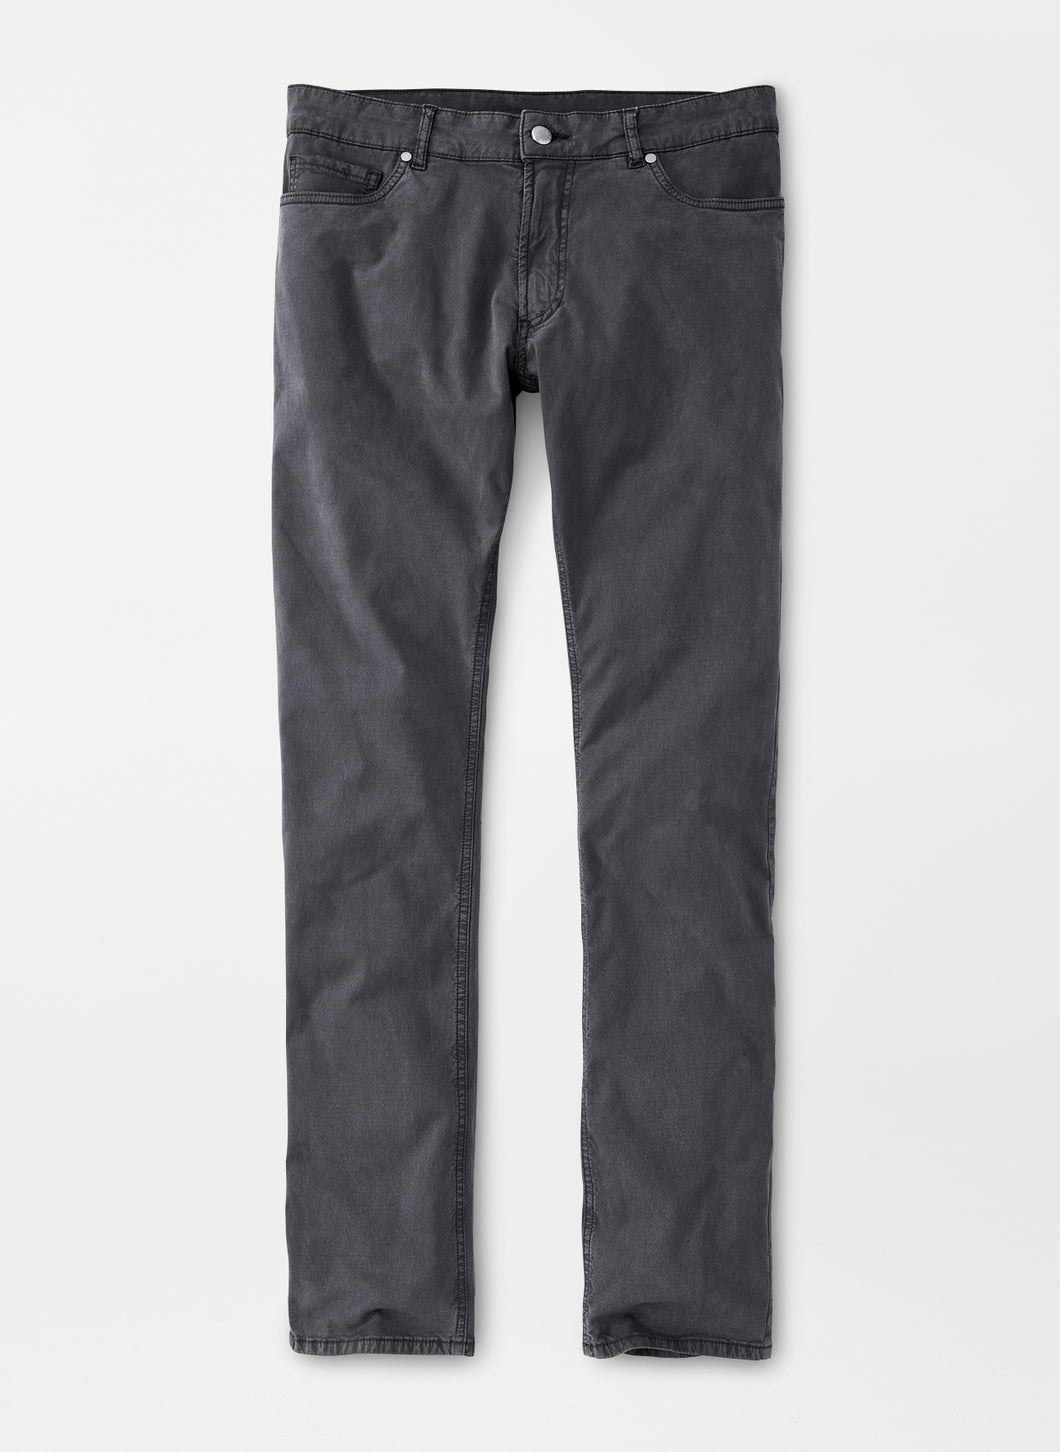 Peter Millar Wayfare Five-Pocket Pant in Dolomite Grey